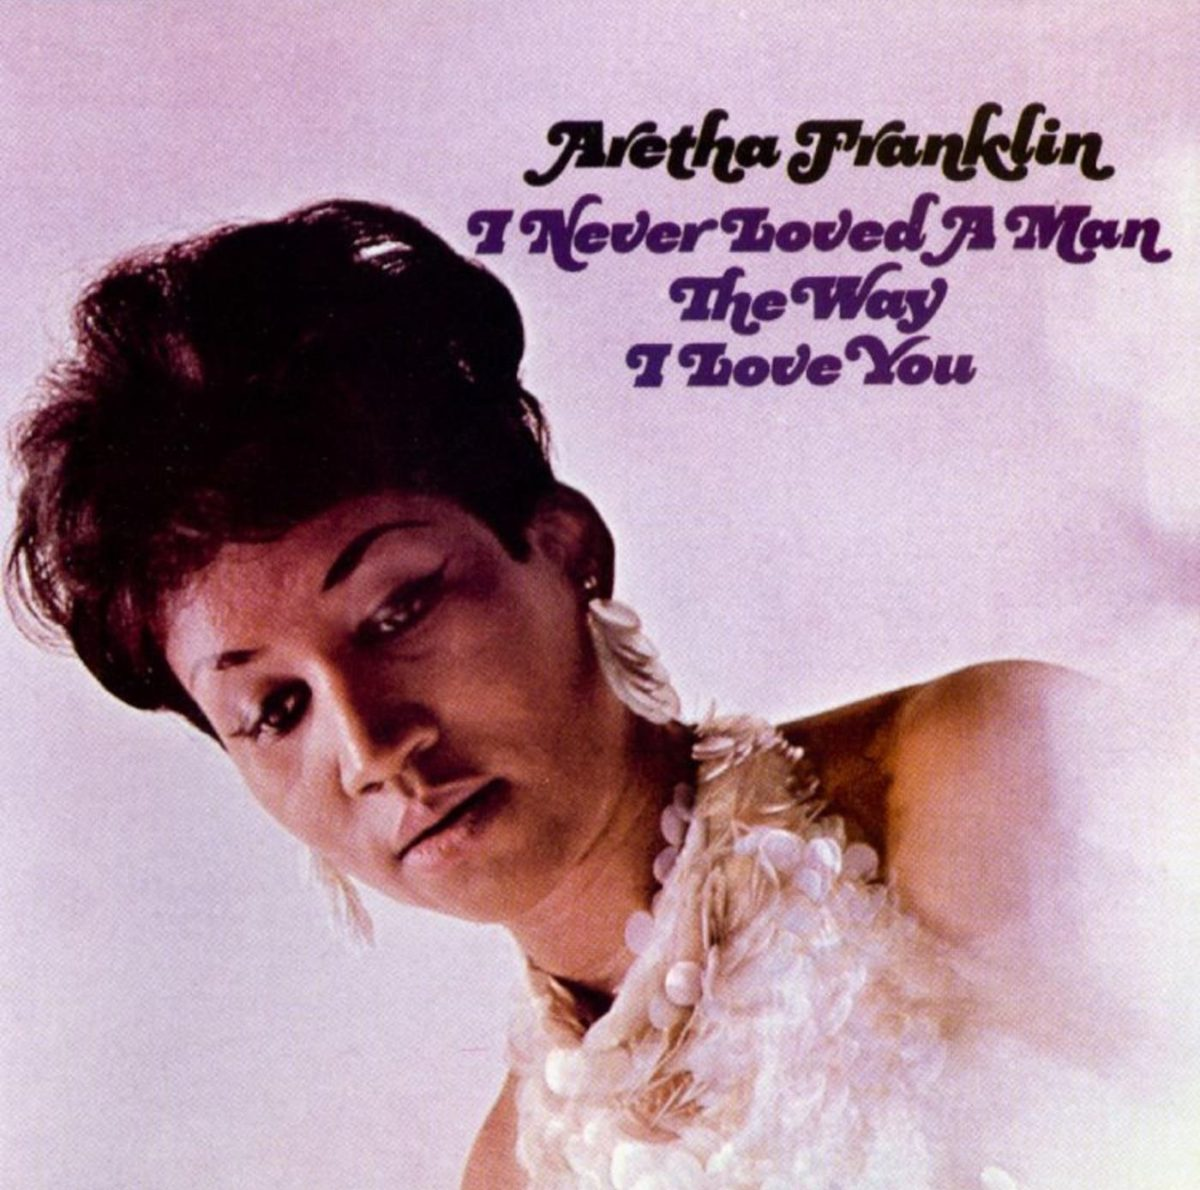 I Never Loved A Man (The Way I Love You), un titre à l'origine de la carrière internationale d'Aretha Franklin